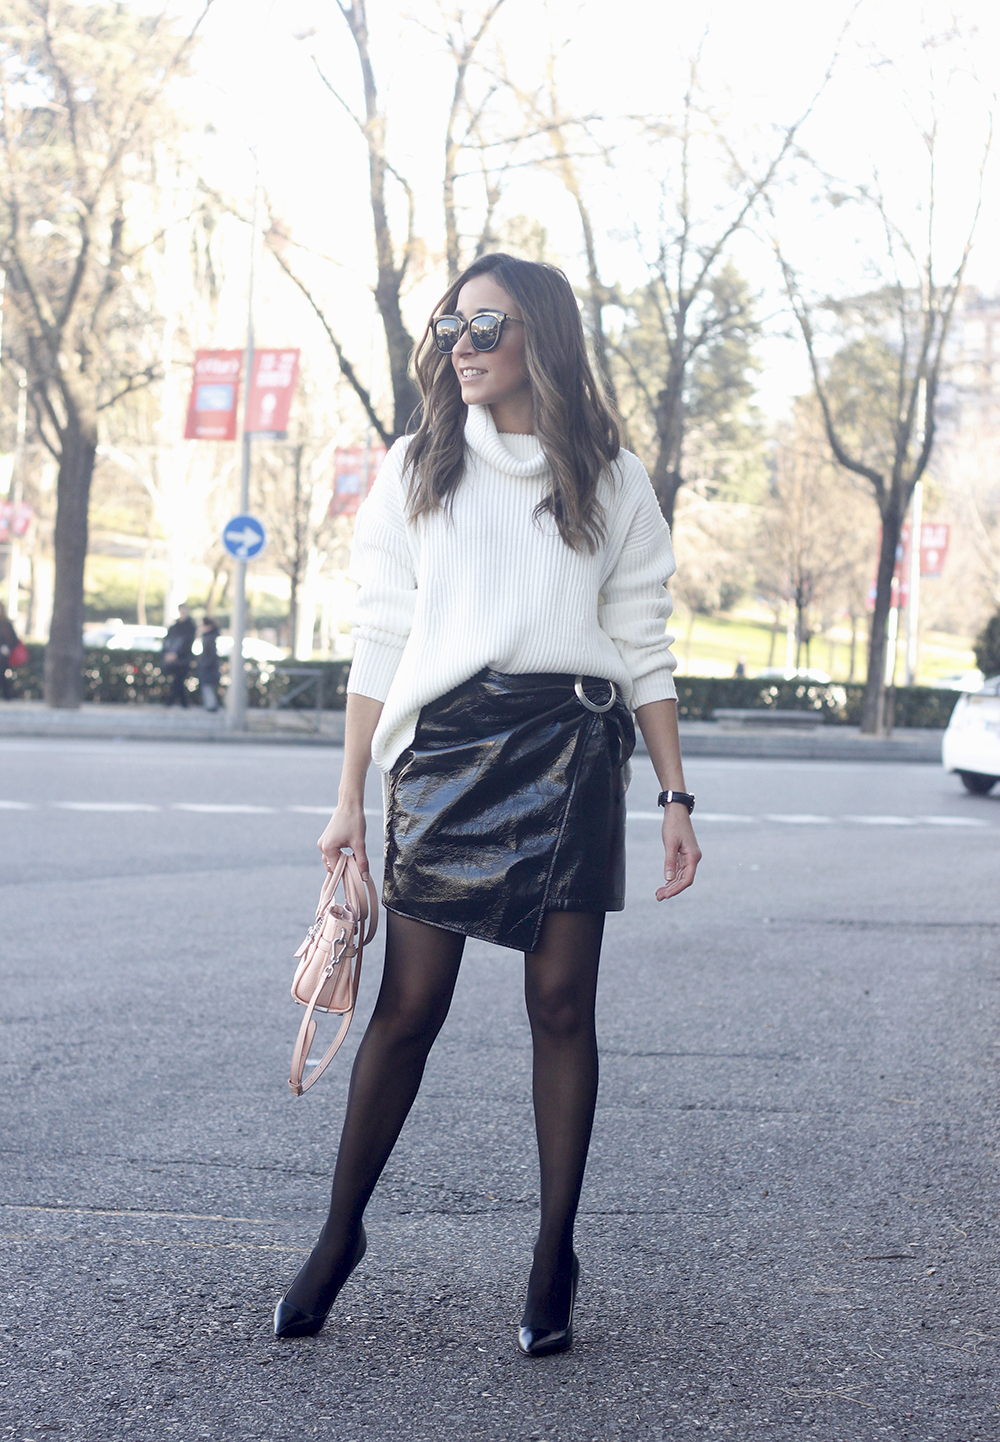 Black Patent leather skirt white sweater coach bag heels outfit style fashion winter01